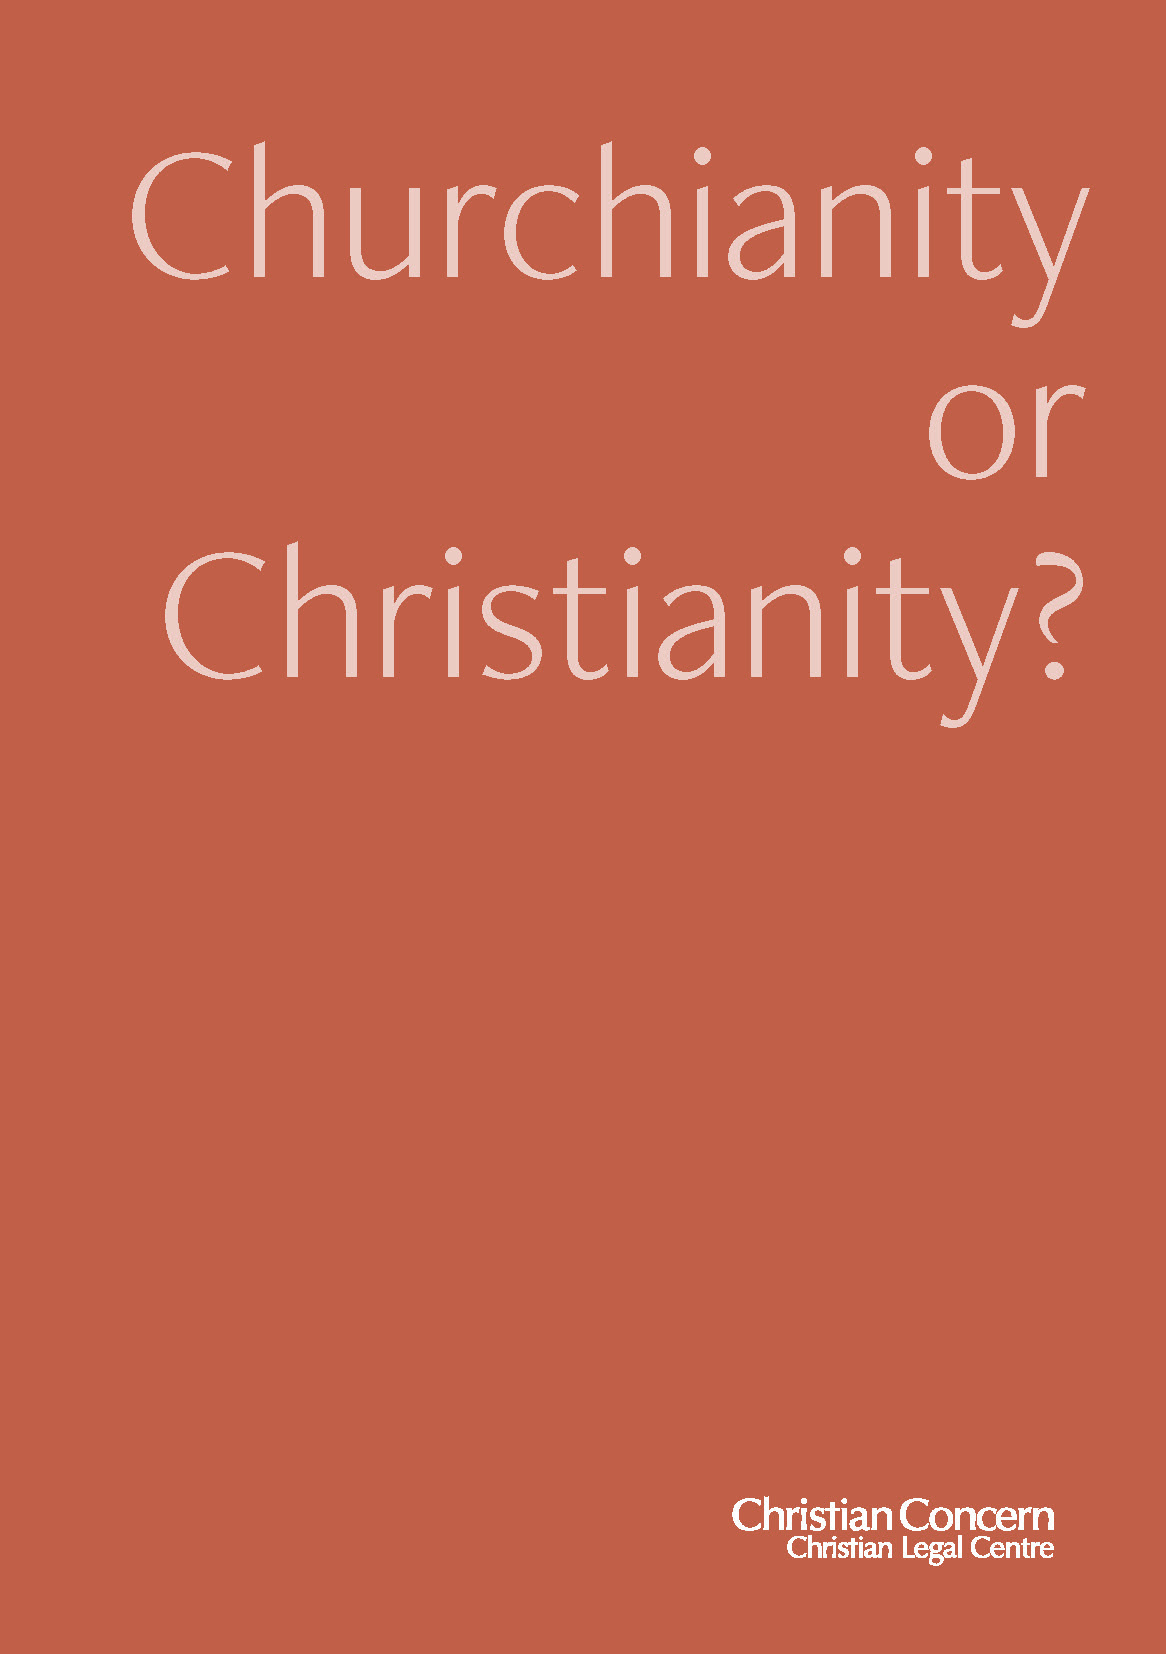 Churchianity Booklet